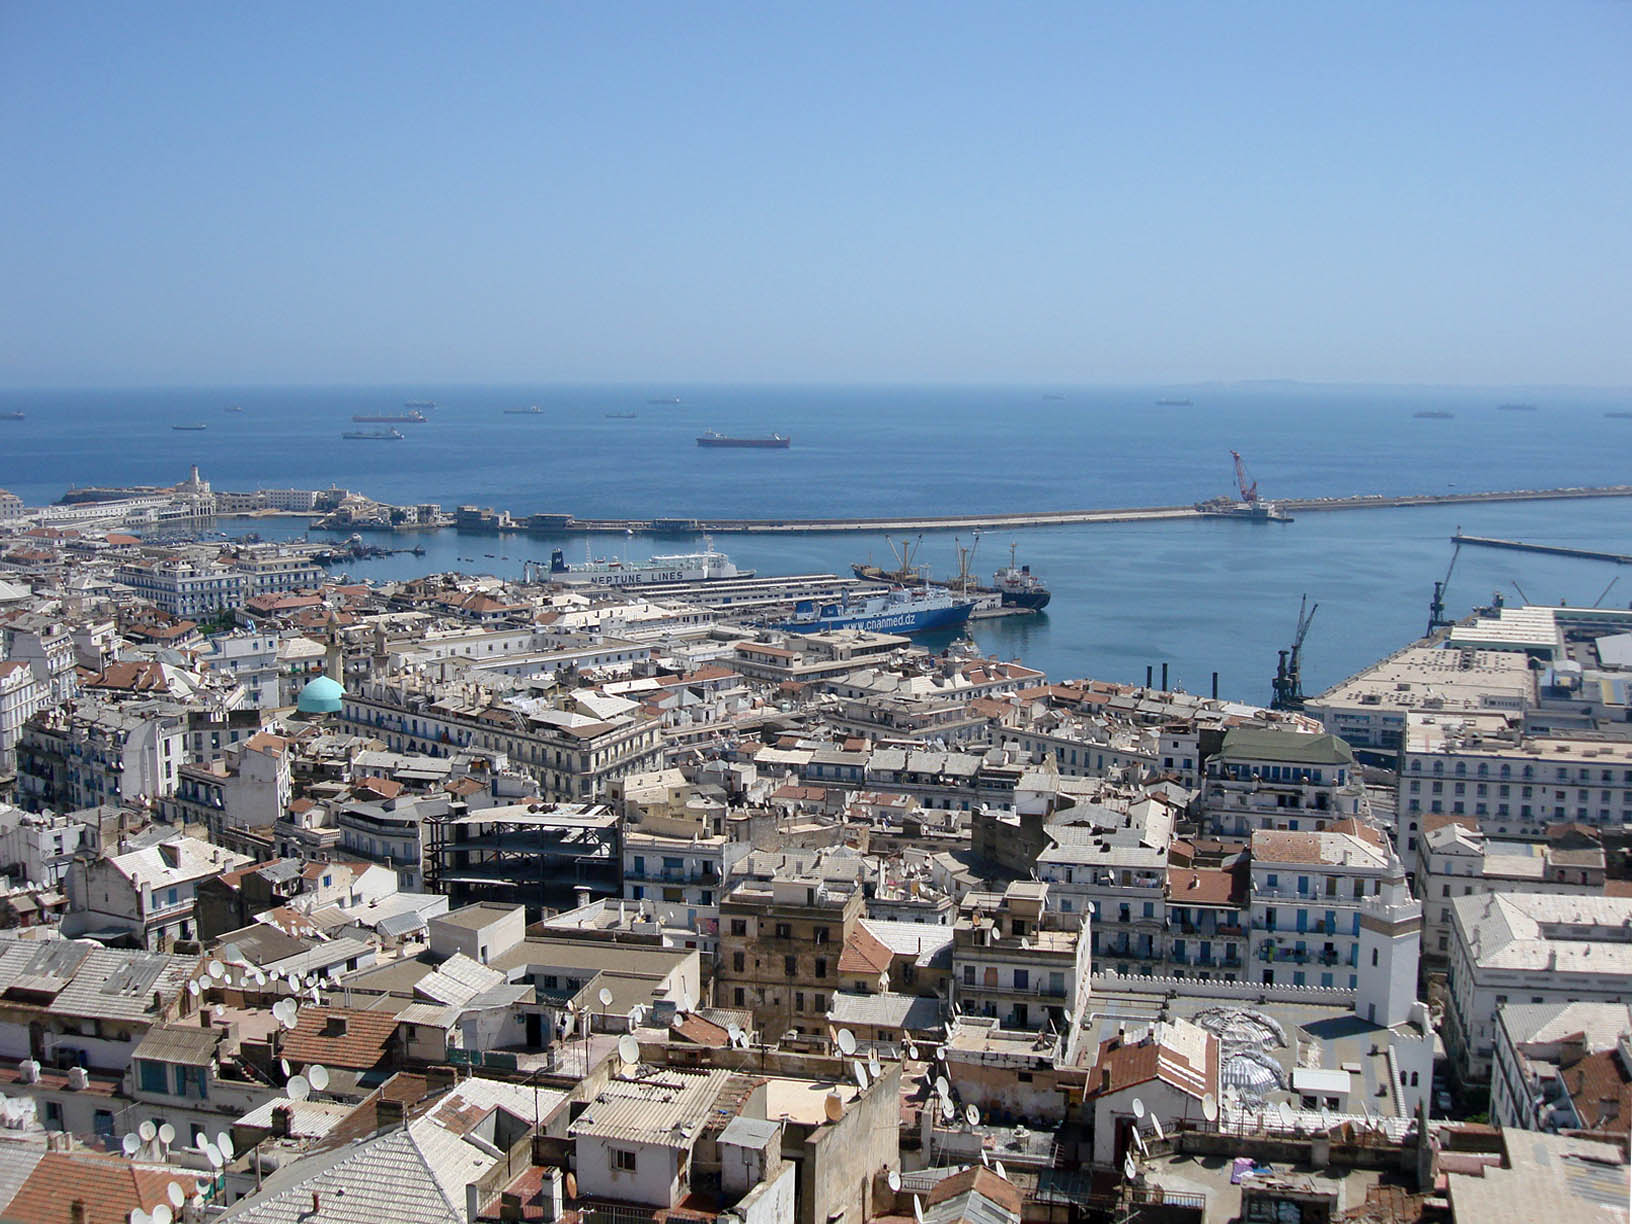 Algiers Historic Harbour & Casbah